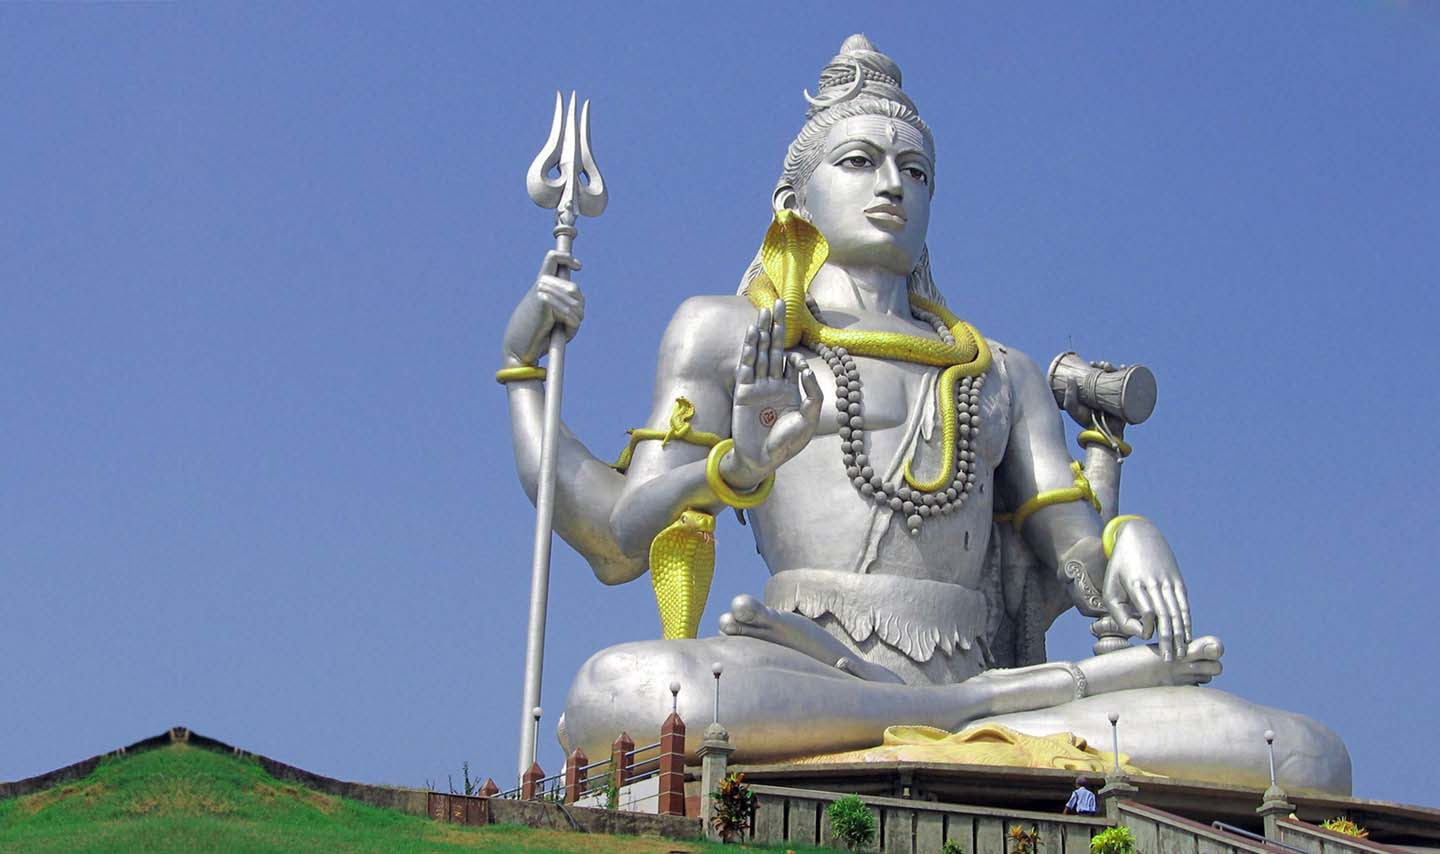 Lord Shiva Wallpapers Hd Free Download For Desktop Wallpapers